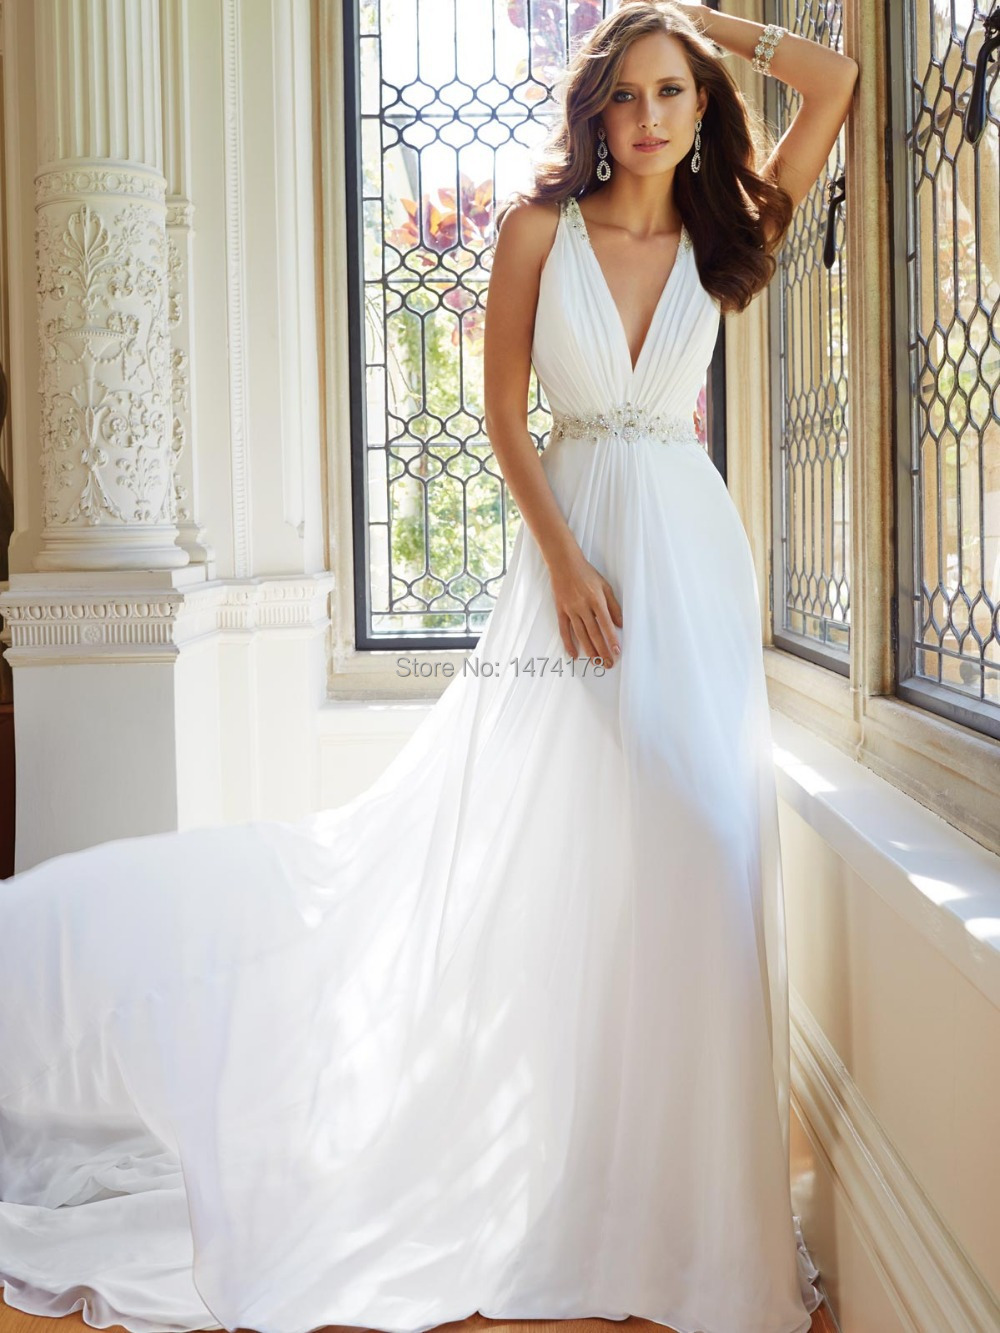 fantastic white cathedral length applique purfle pearls new arrival wedding veil plunge wedding dress B Gorgeous Mermaid Plunging